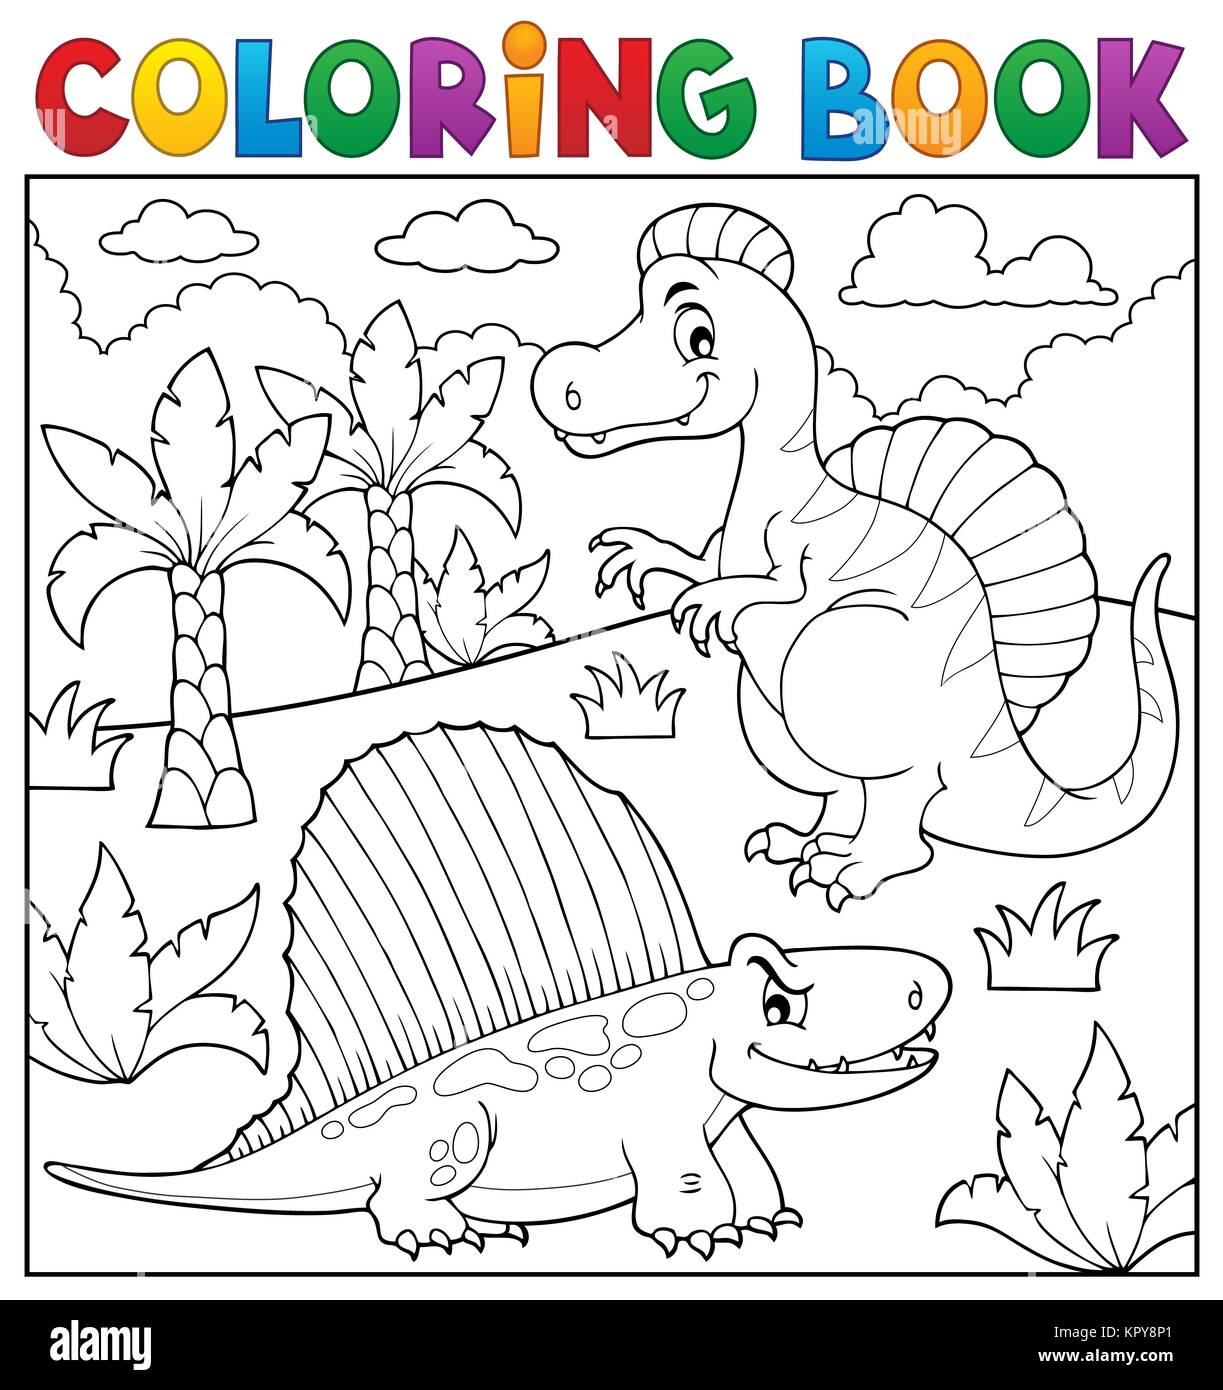 Coloring book dinosaur topic 7 - Stock Image